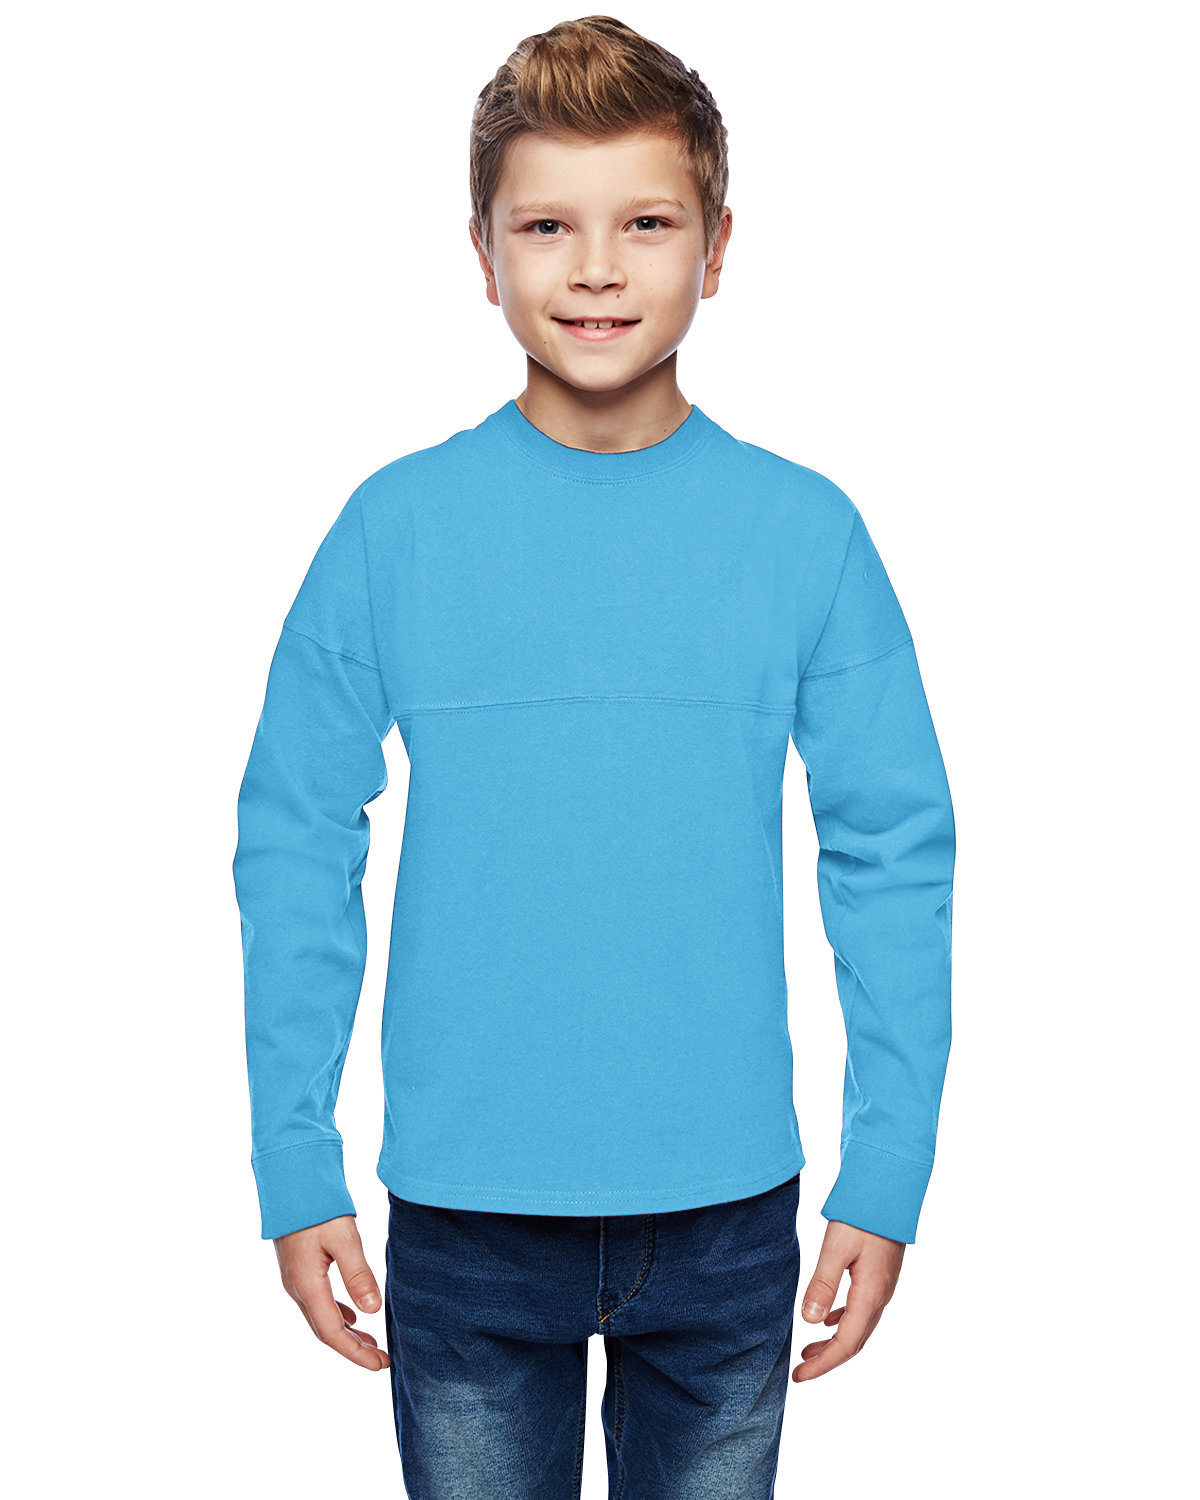 J America Youth Game Day Jersey MAUI BLUE